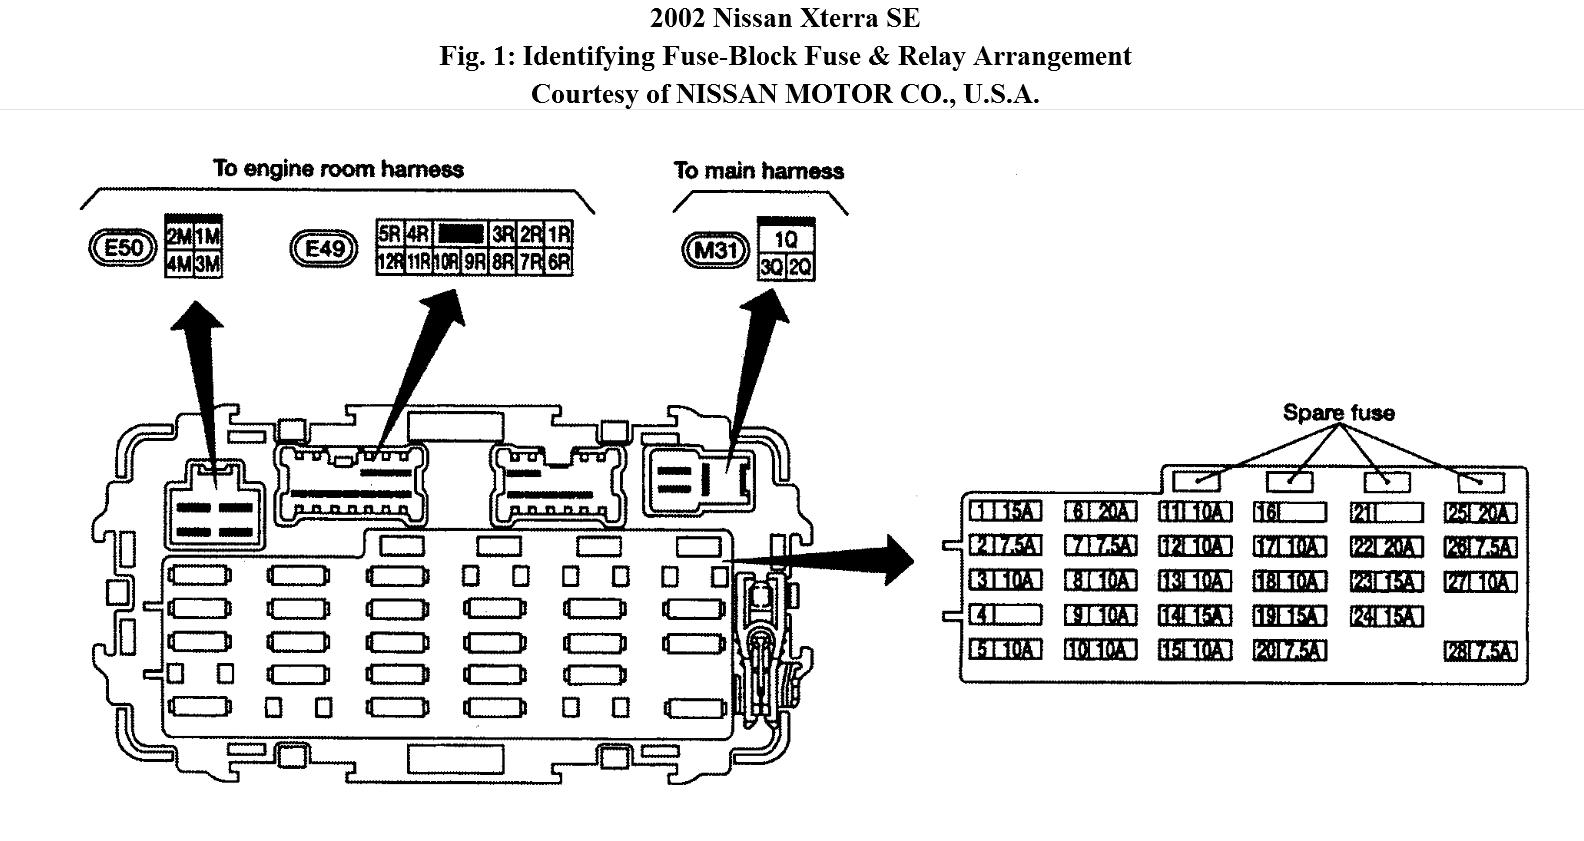 hight resolution of 2001 hyundai xg300 fuse box diagram wiring diagram paper 2003 hyundai xg350 fuse box location hyundai xg300 fuse box location